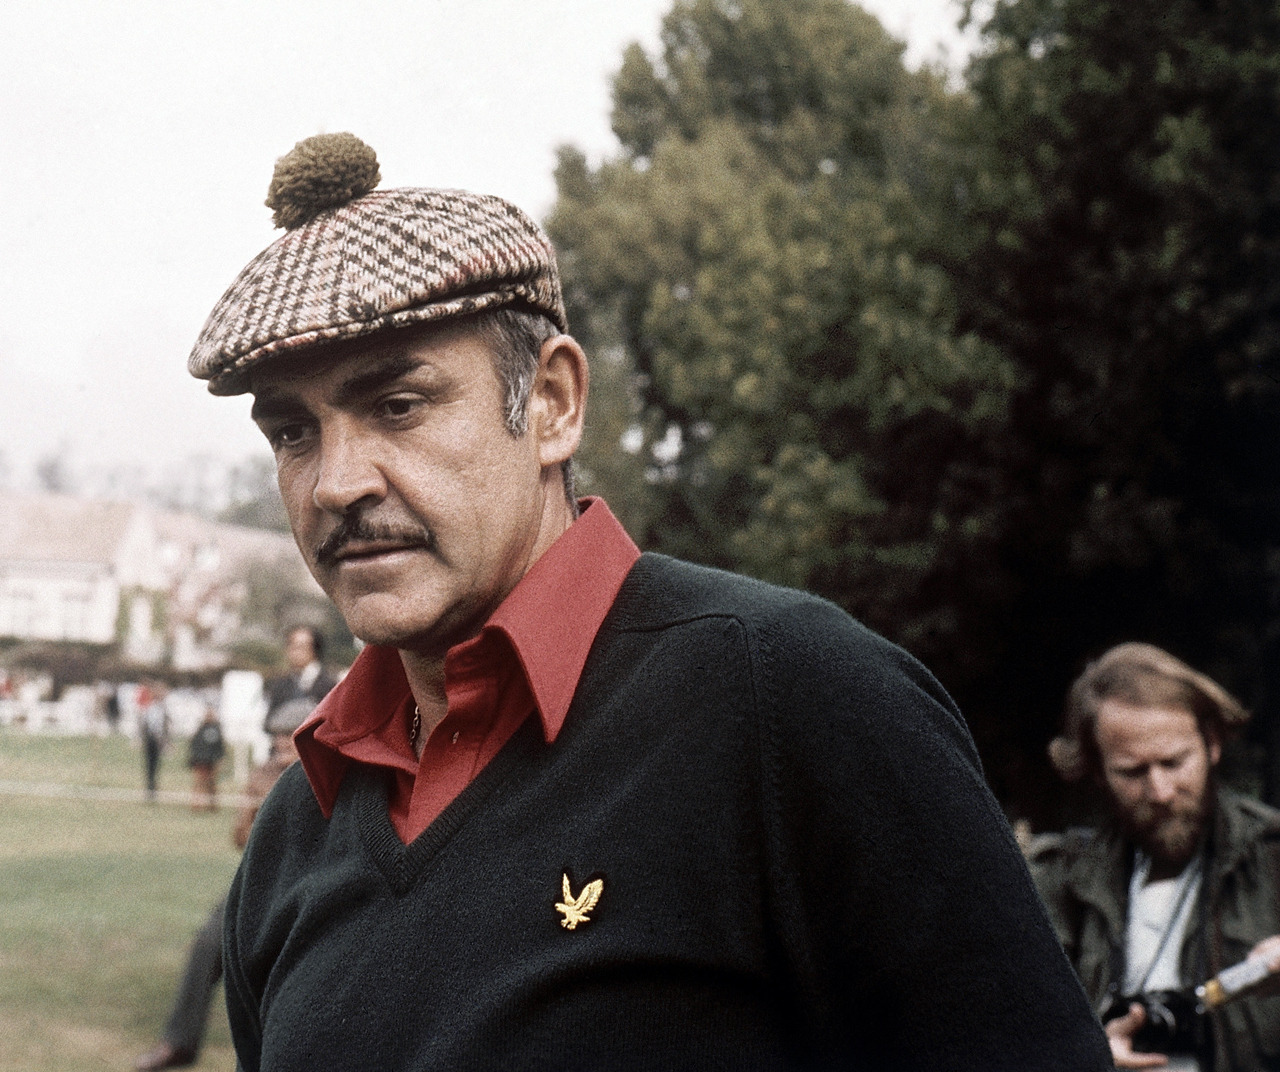 Sean Connery, 1976 playing golf